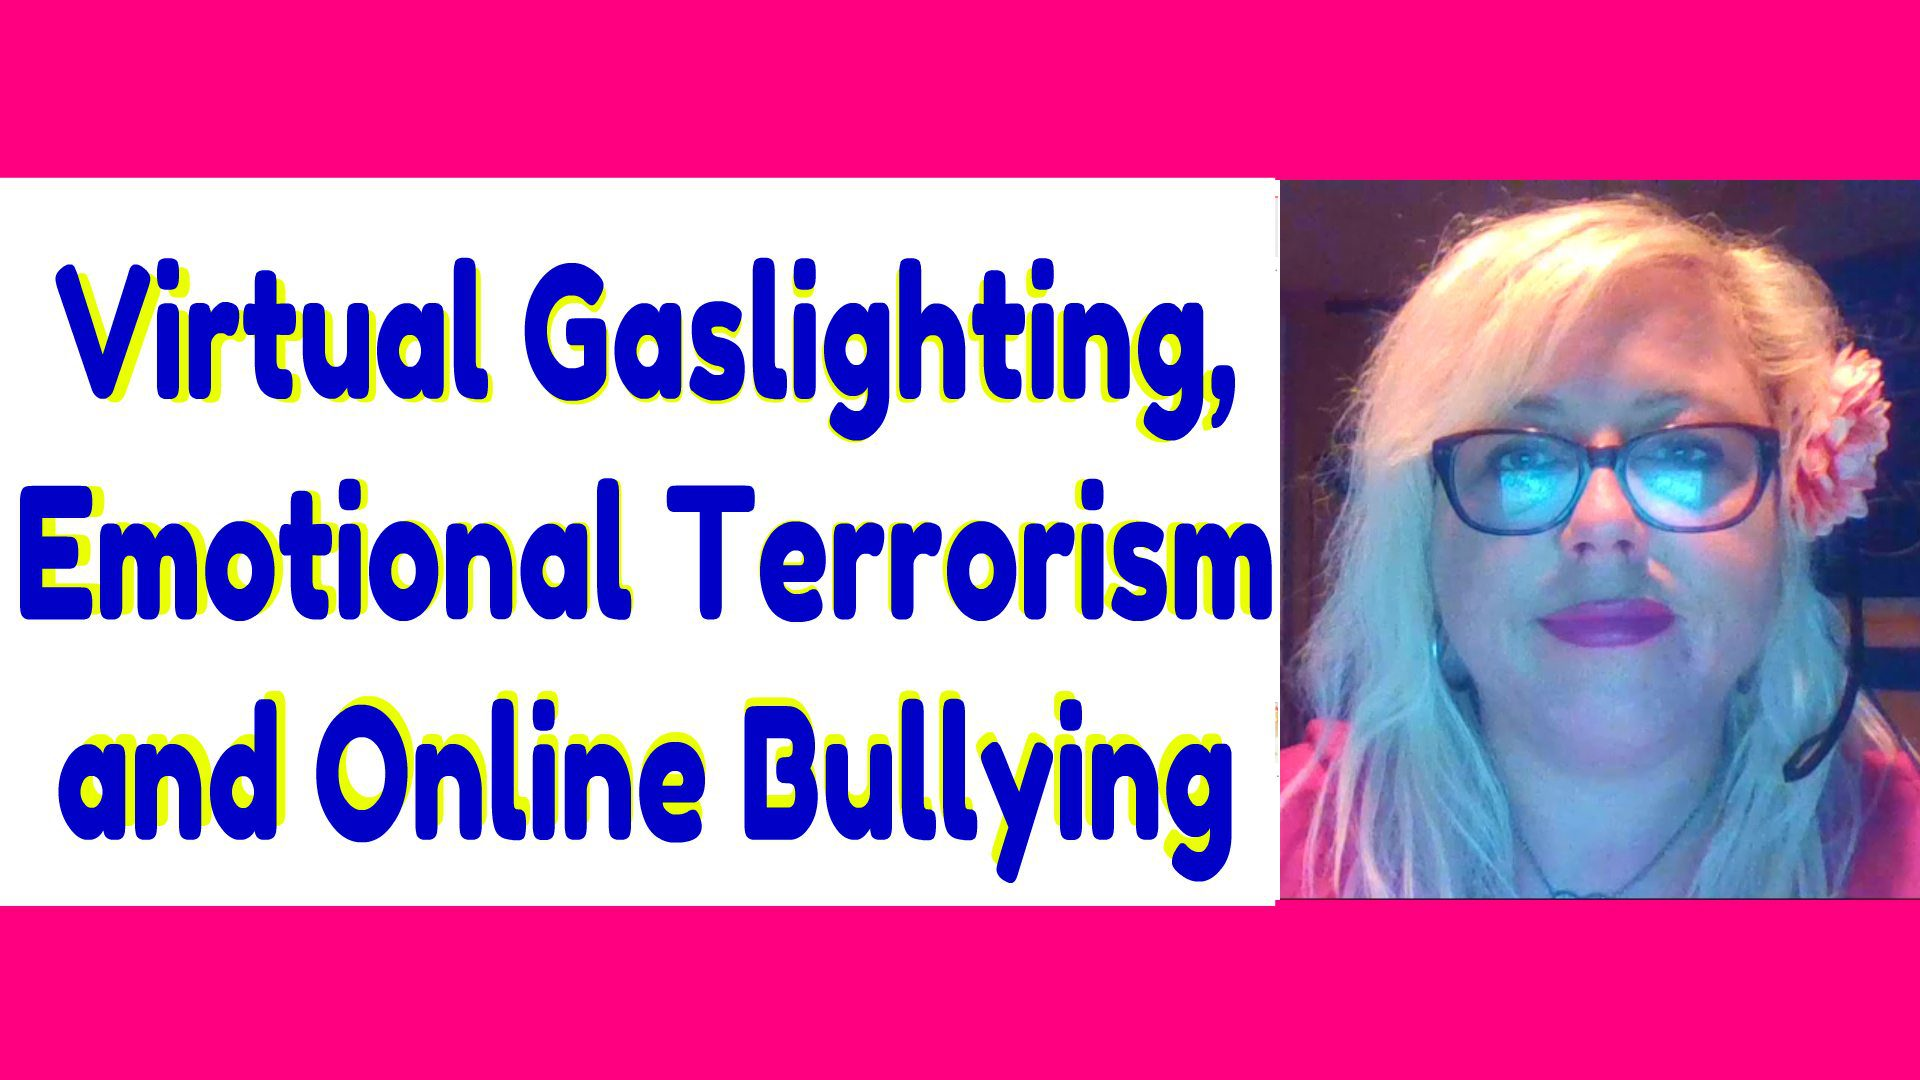 Emotional Terrorism: Narcissists Who Gaslight and Torment You on Social Media